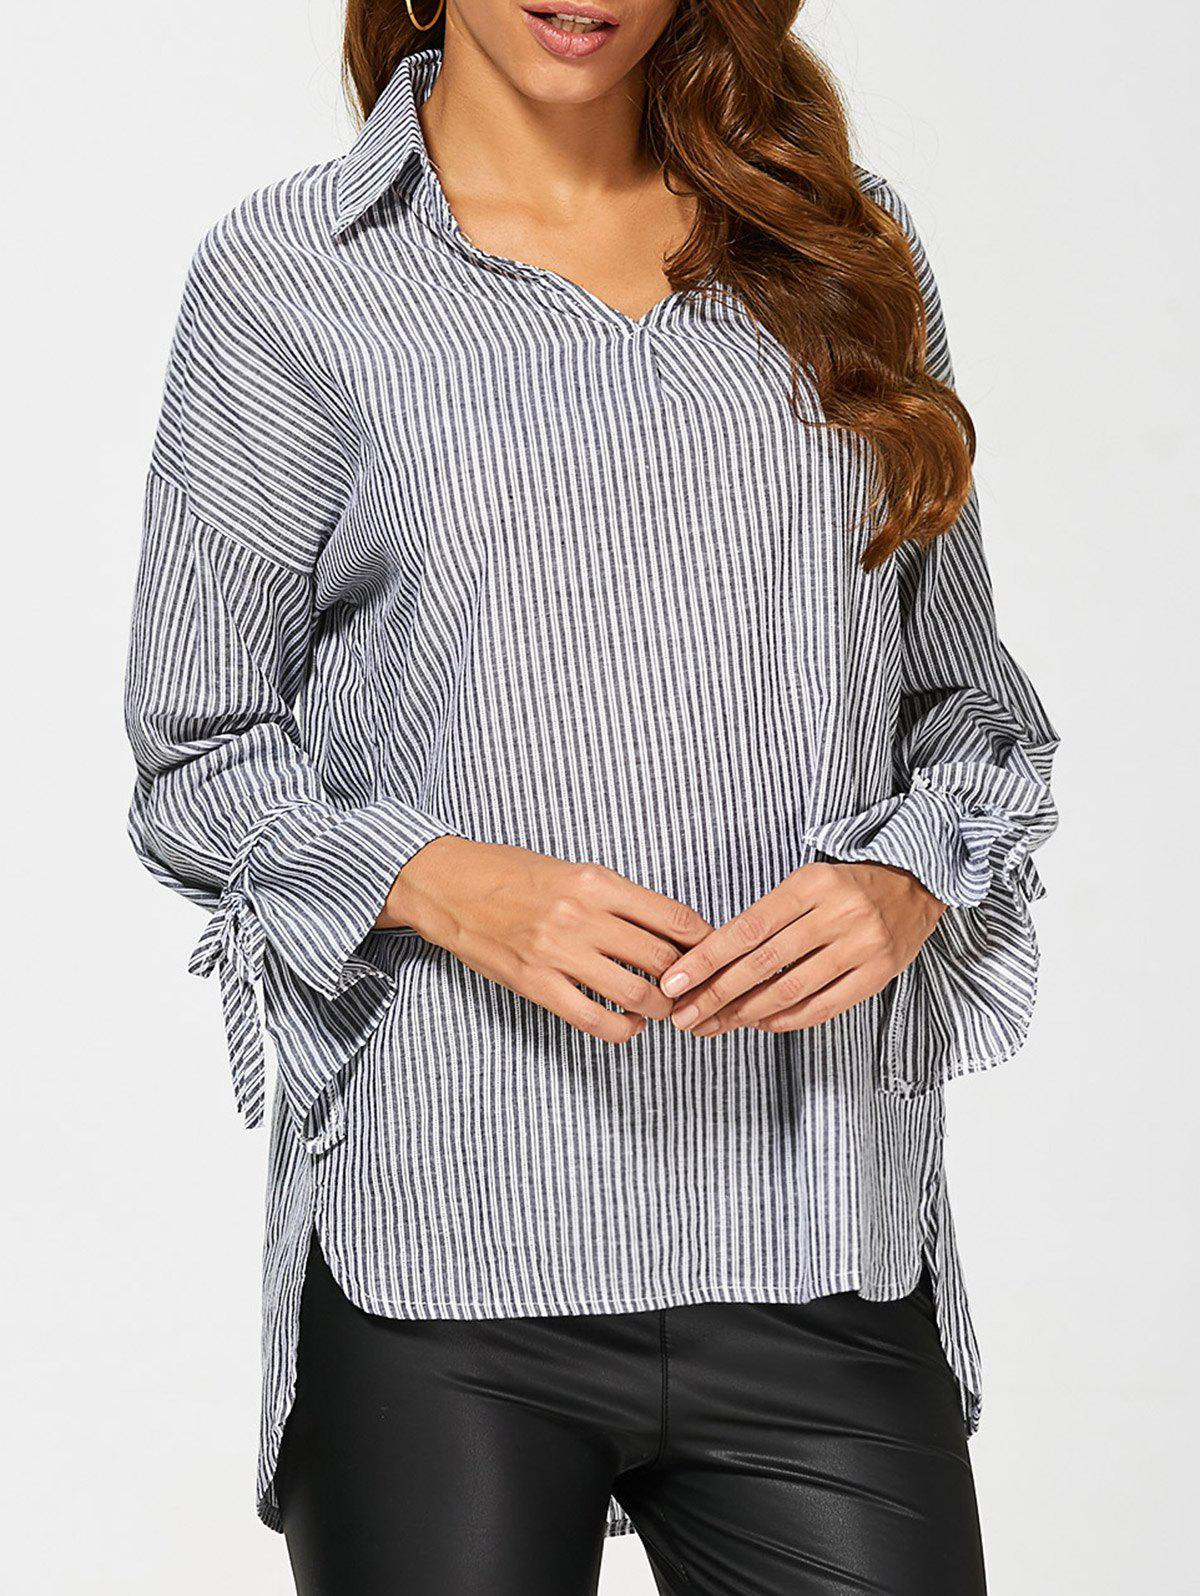 Pinstriped High Low Blouse - BLACK L